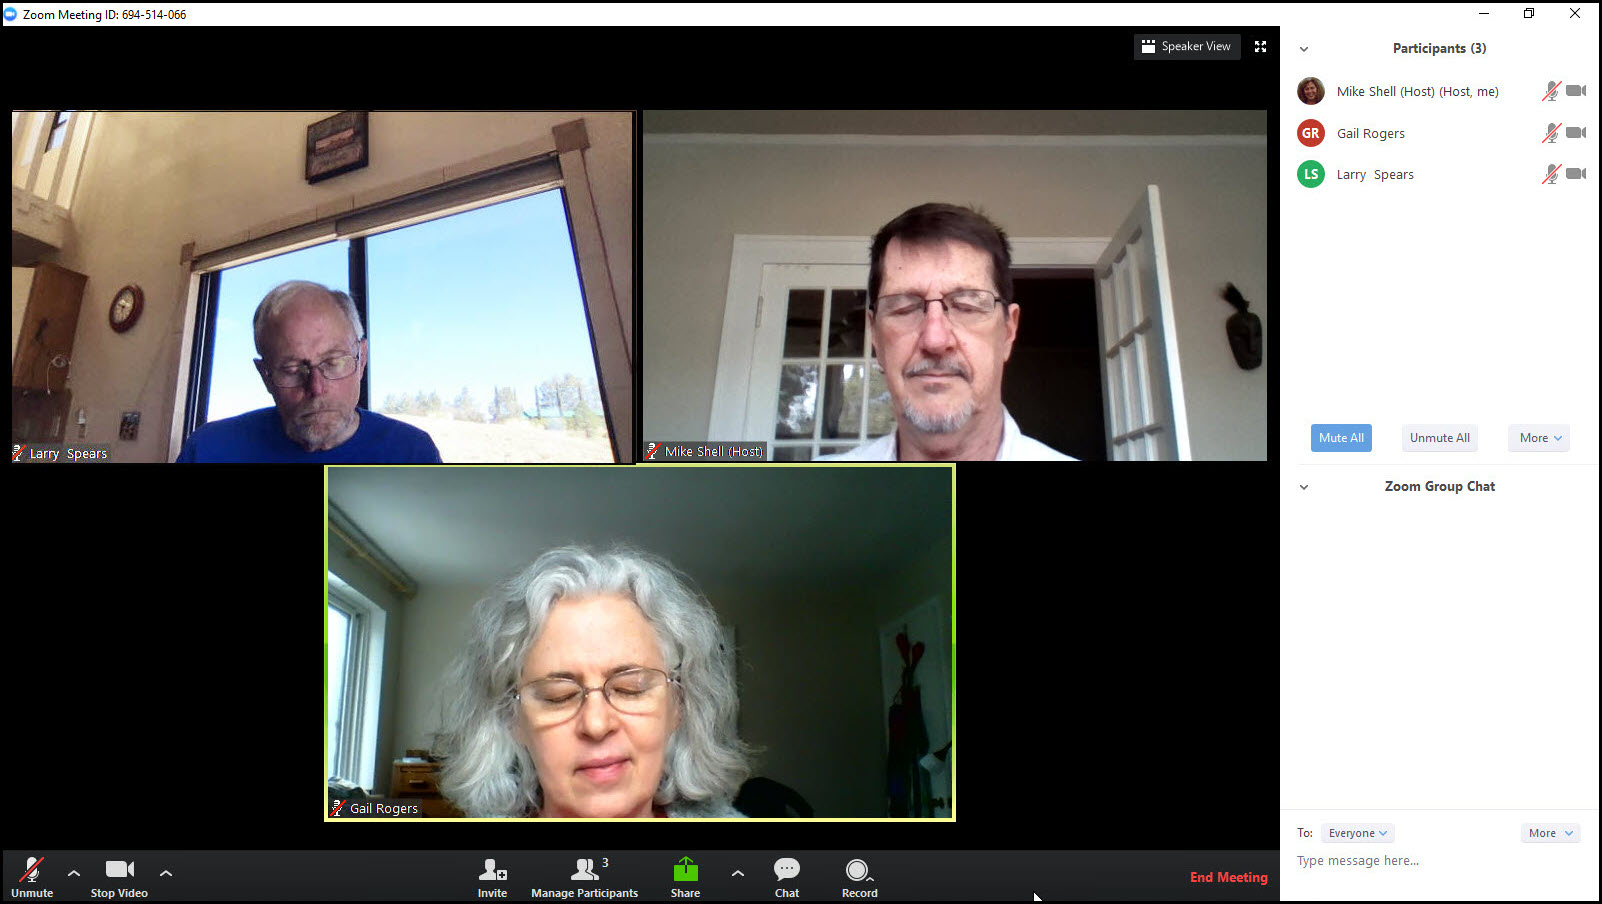 Online Quaker worship using Zoom video conferencing